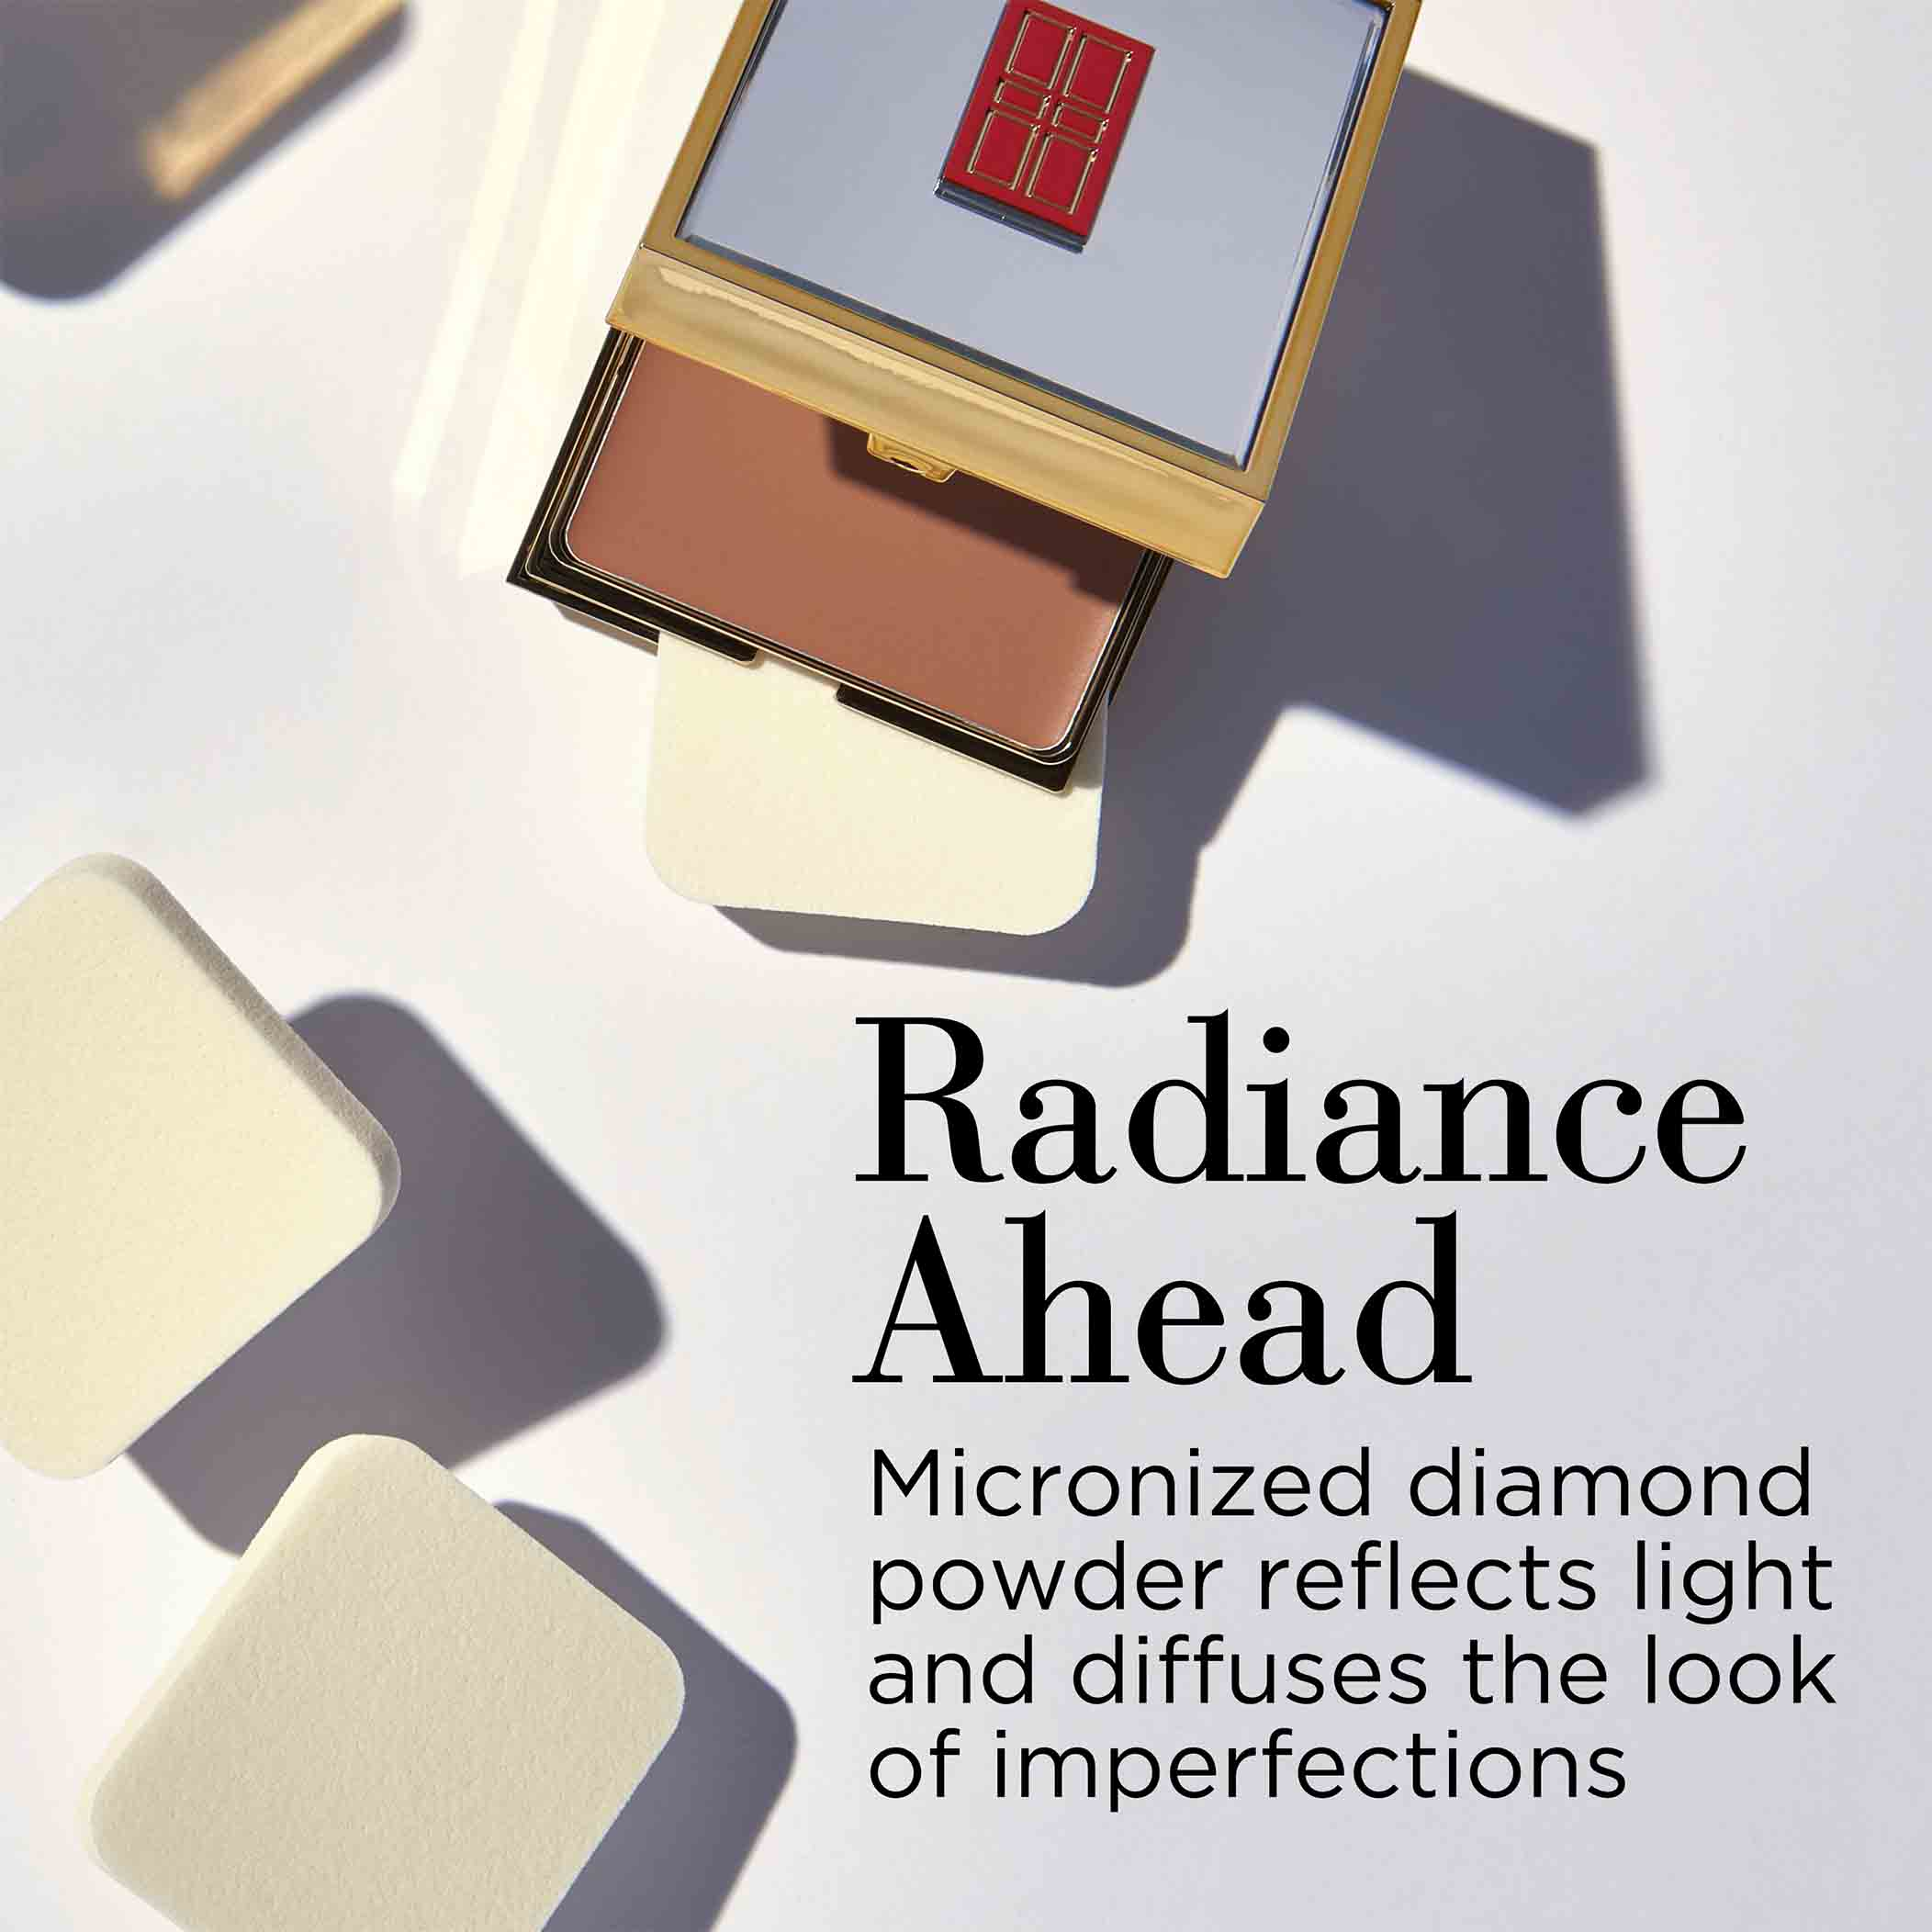 Radiance Ahead- Micronized diamond powder reflects light and diffuses the look of imperfections